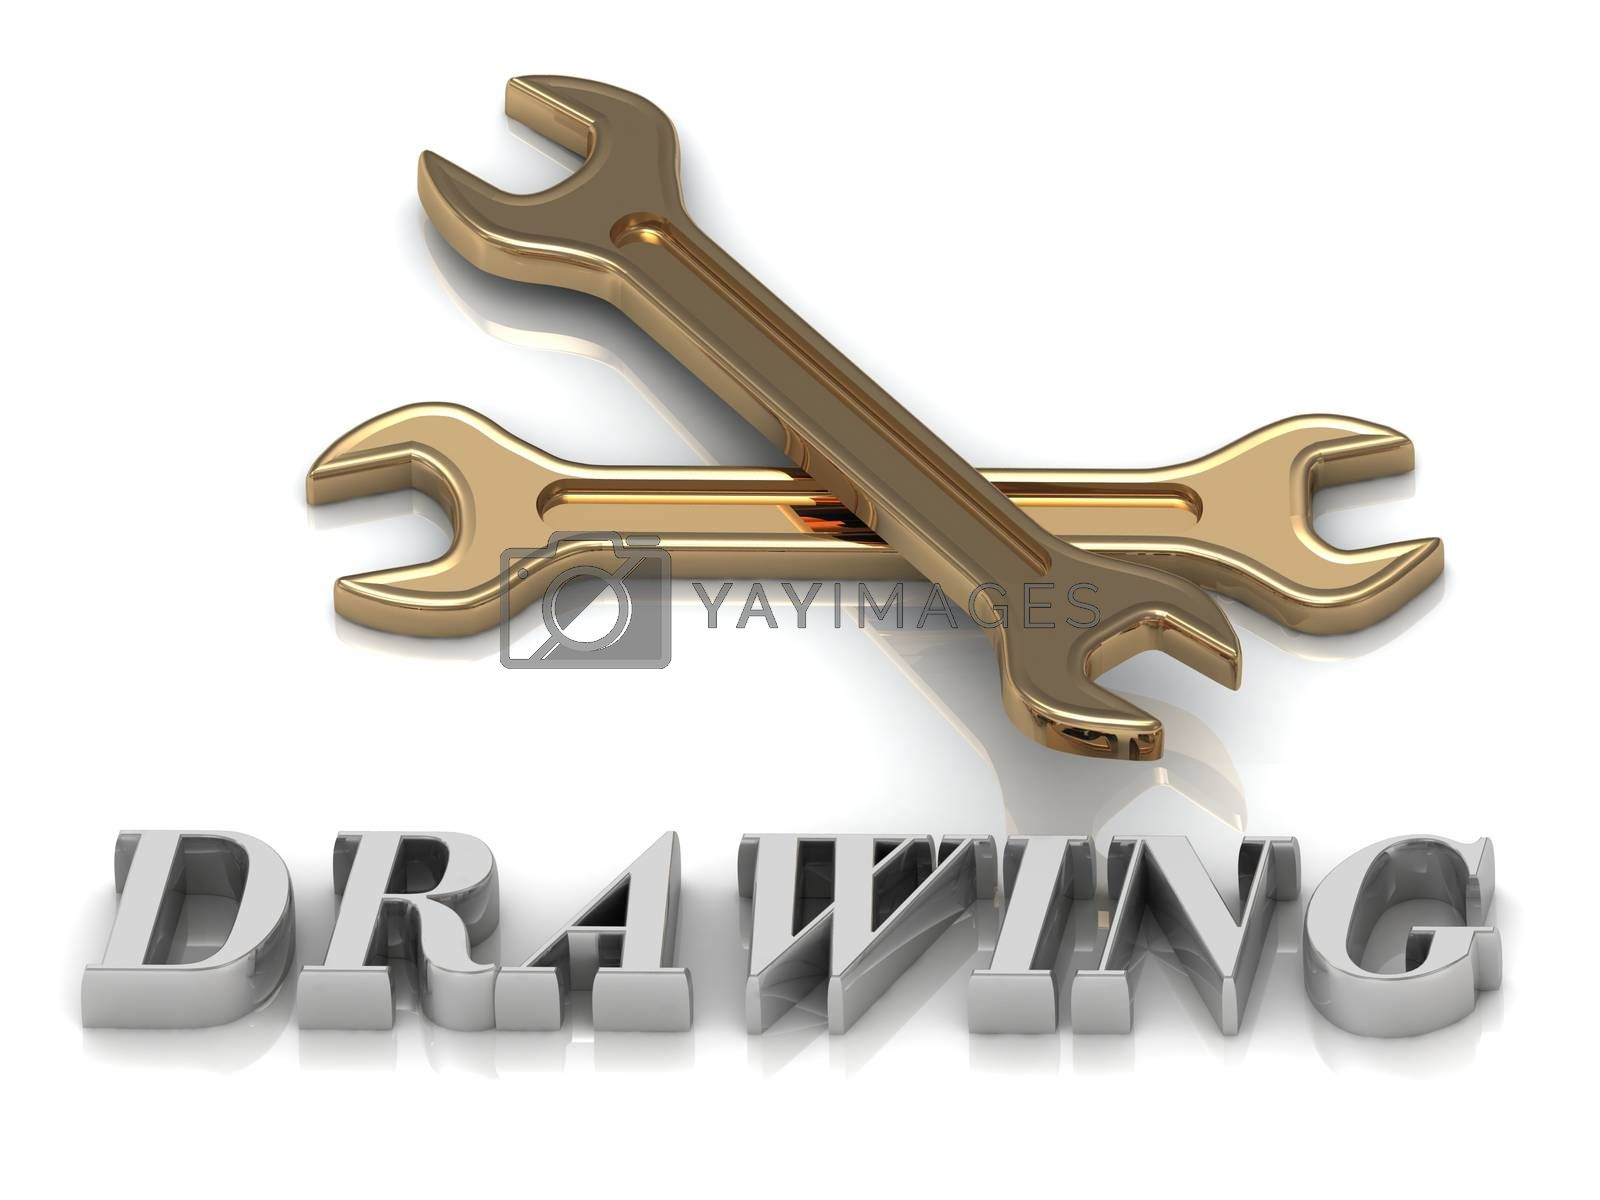 DRAWING- inscription of metal letters and 2 keys on white background